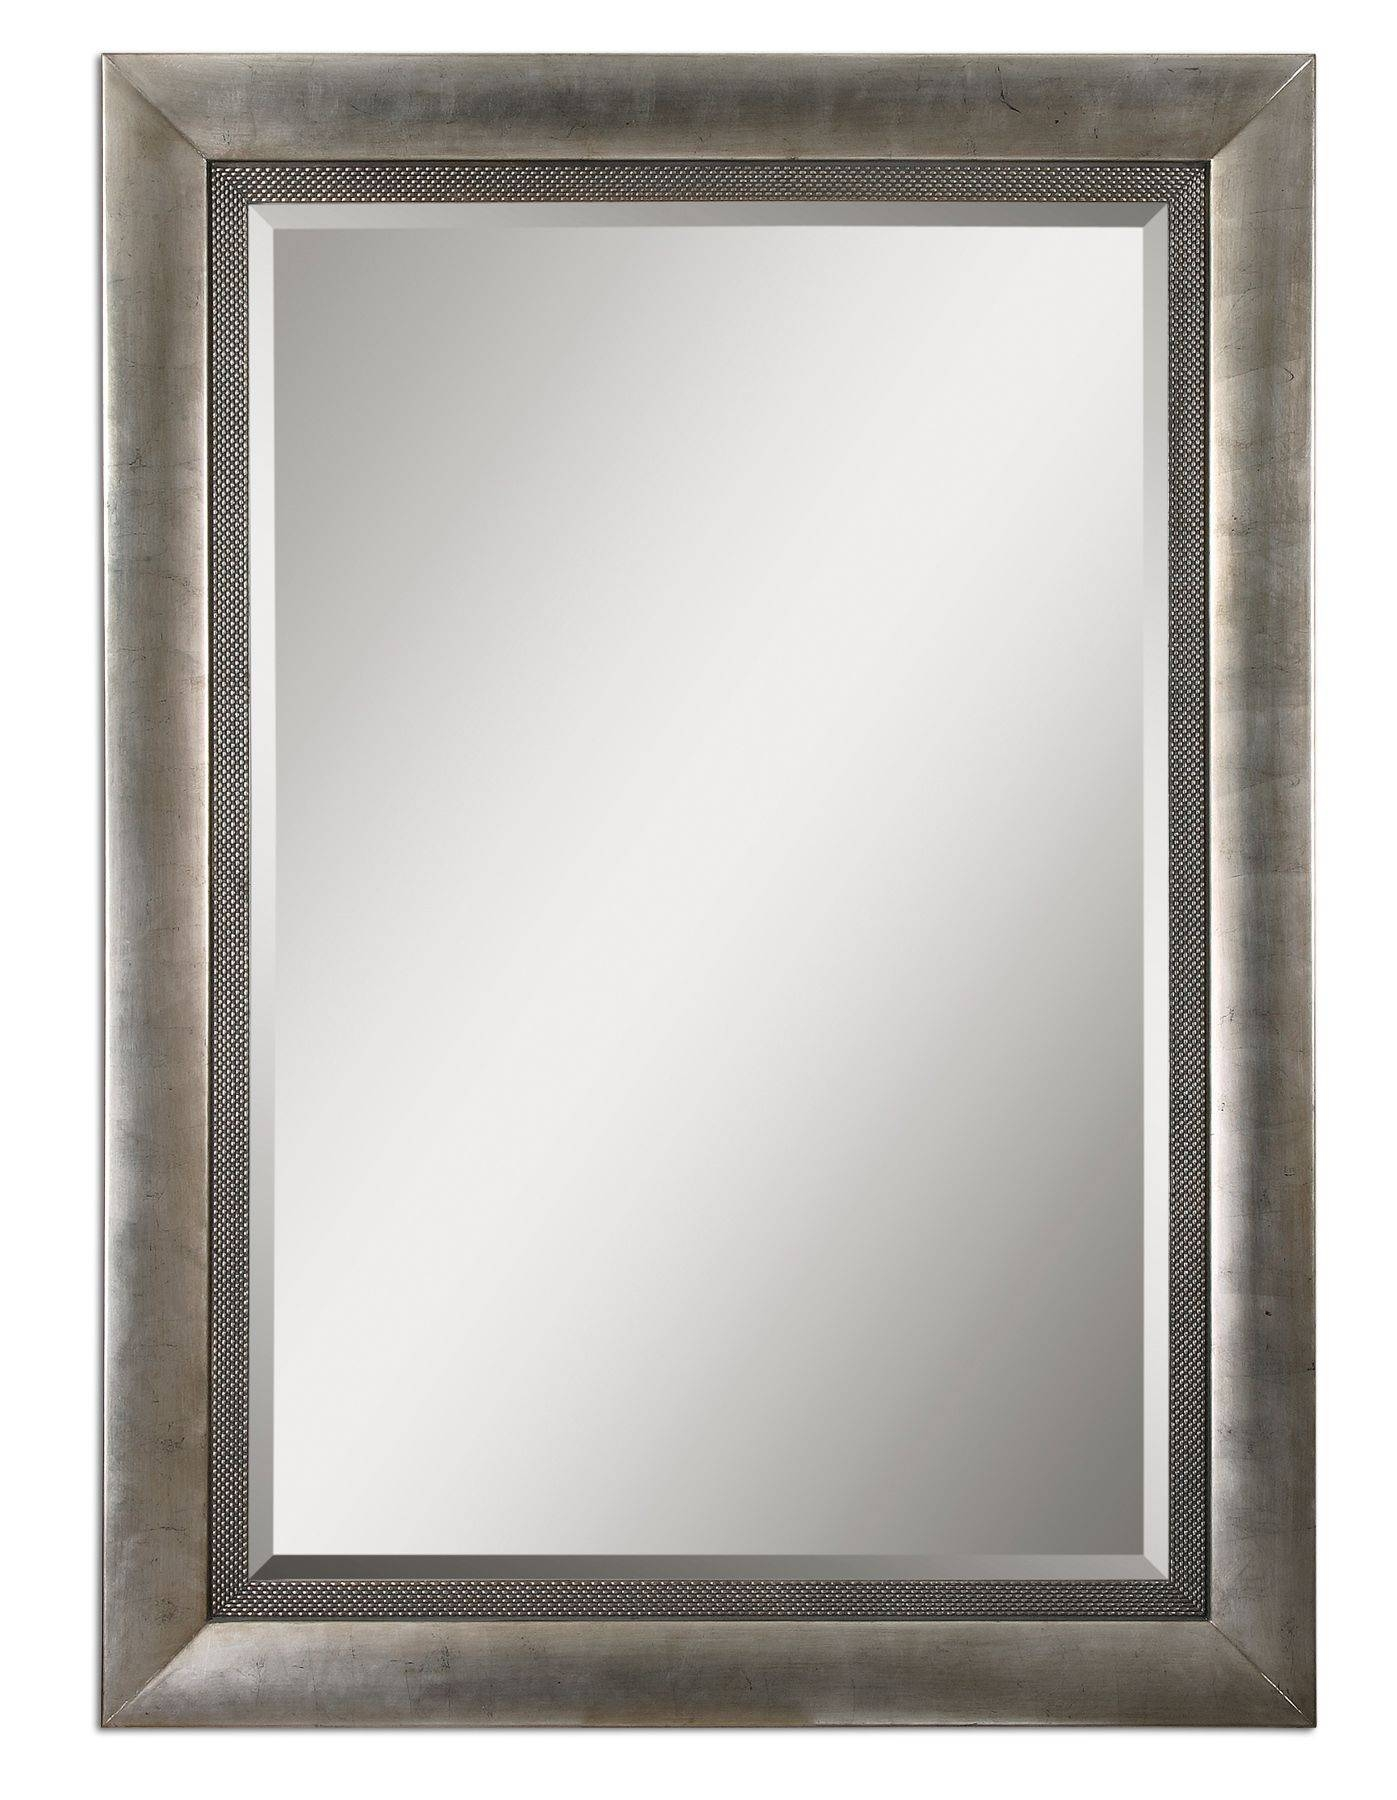 Uttermost Gilford Antique Silver Mirror 14207 Throughout Silver Antique Mirrors (View 24 of 25)